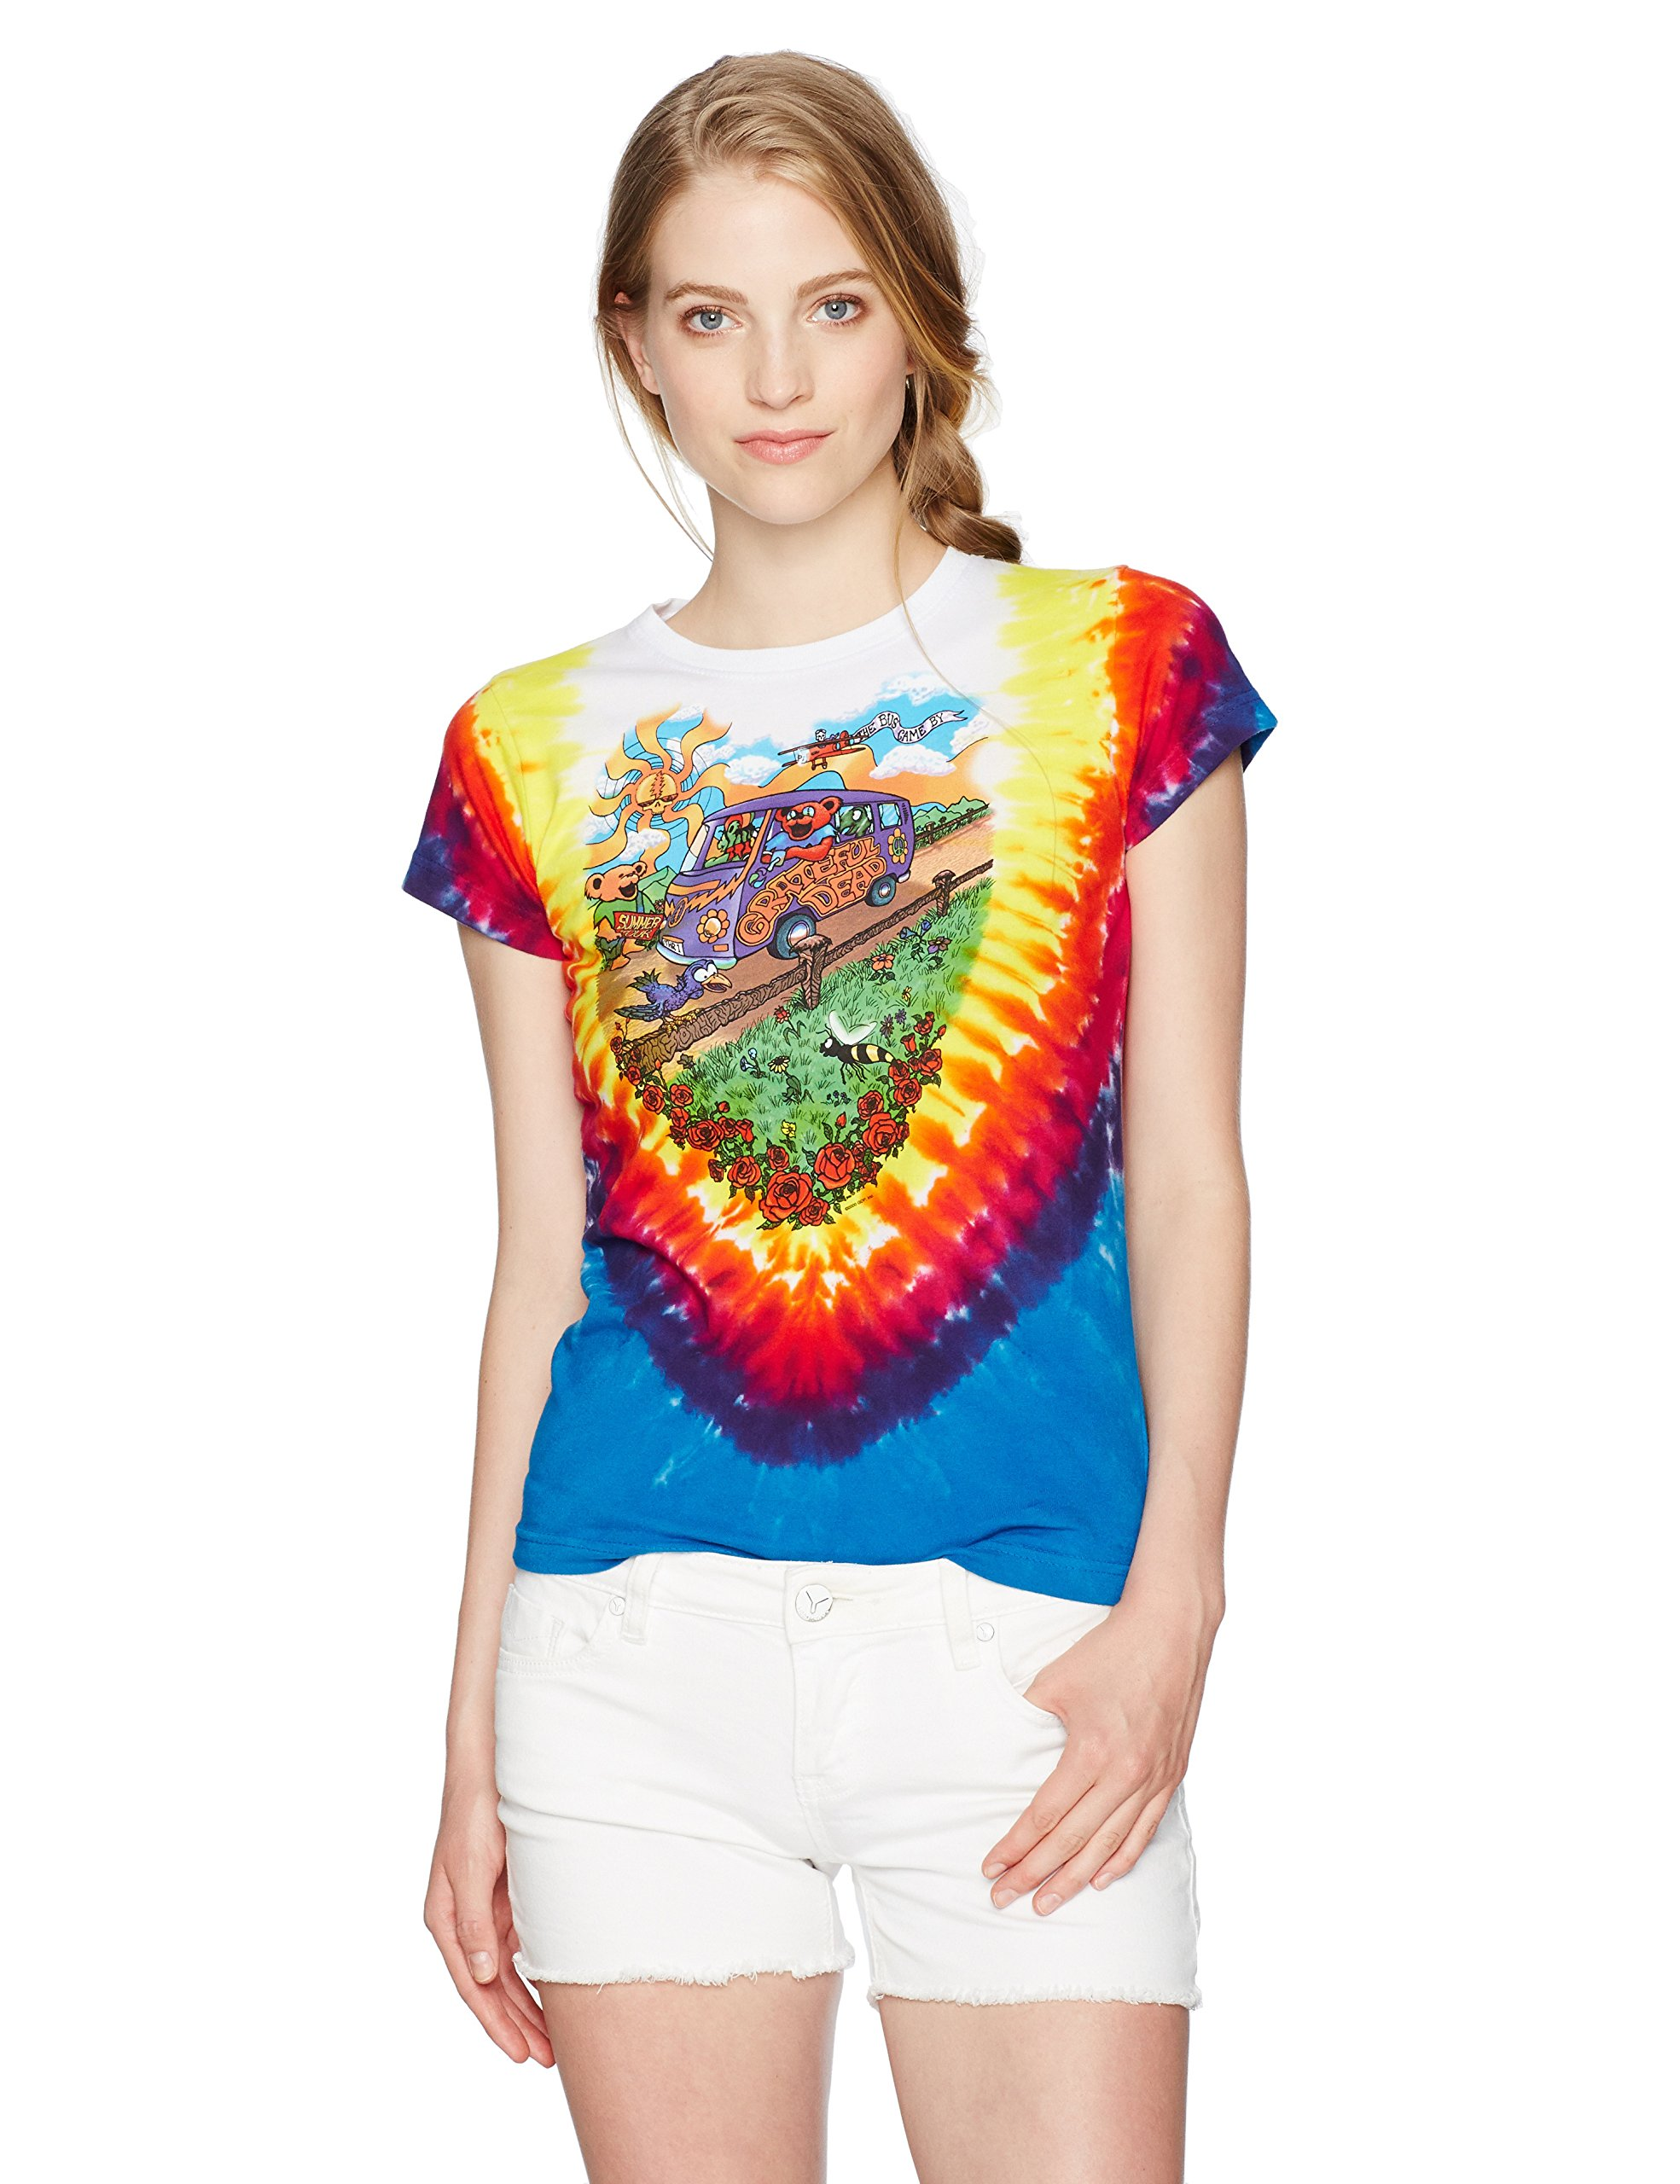 Liquid Blue Women's Grateful Dead Summer Tour Bus Tie Dye Juniorsgraphic Tee, Large